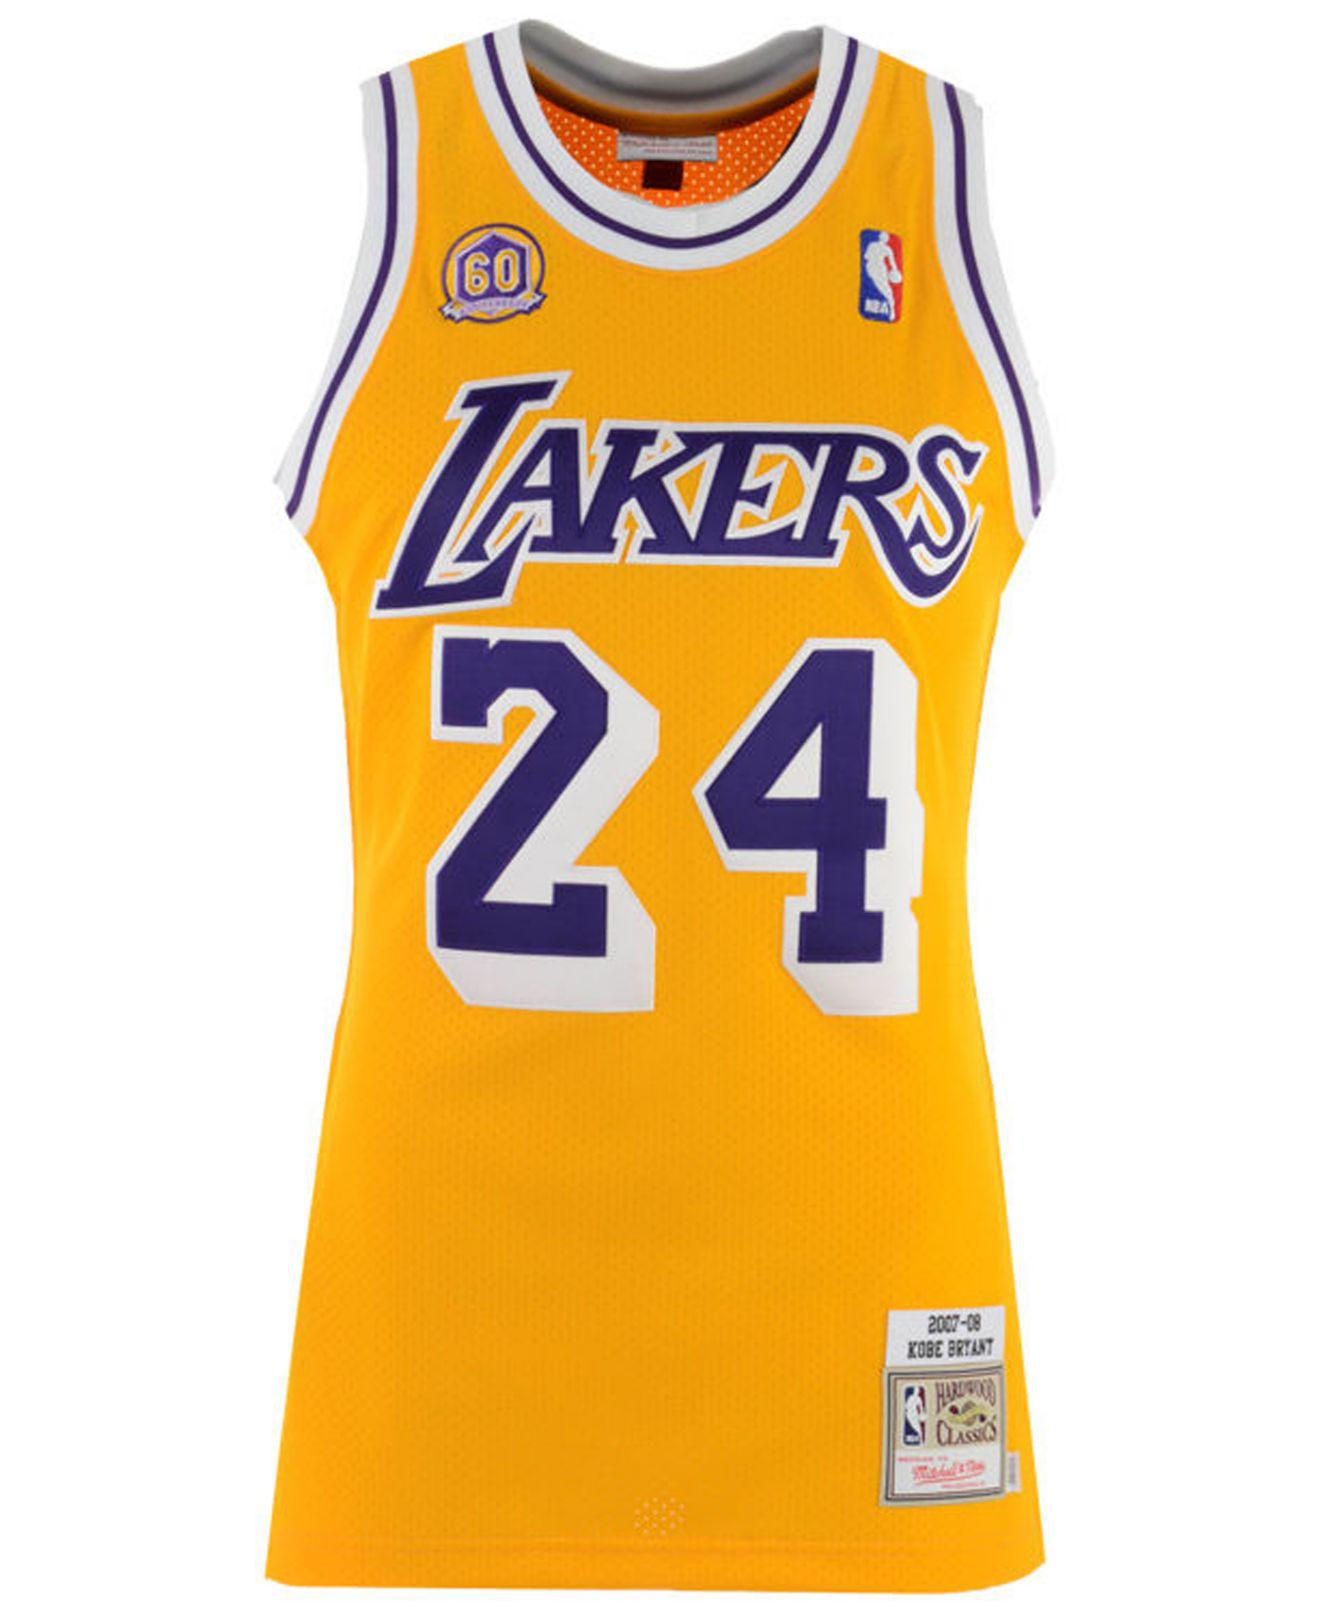 7be8191a00e Mitchell & Ness - Metallic Kobe Bryant Los Angeles Lakers Authentic Jersey  for Men - Lyst. View fullscreen